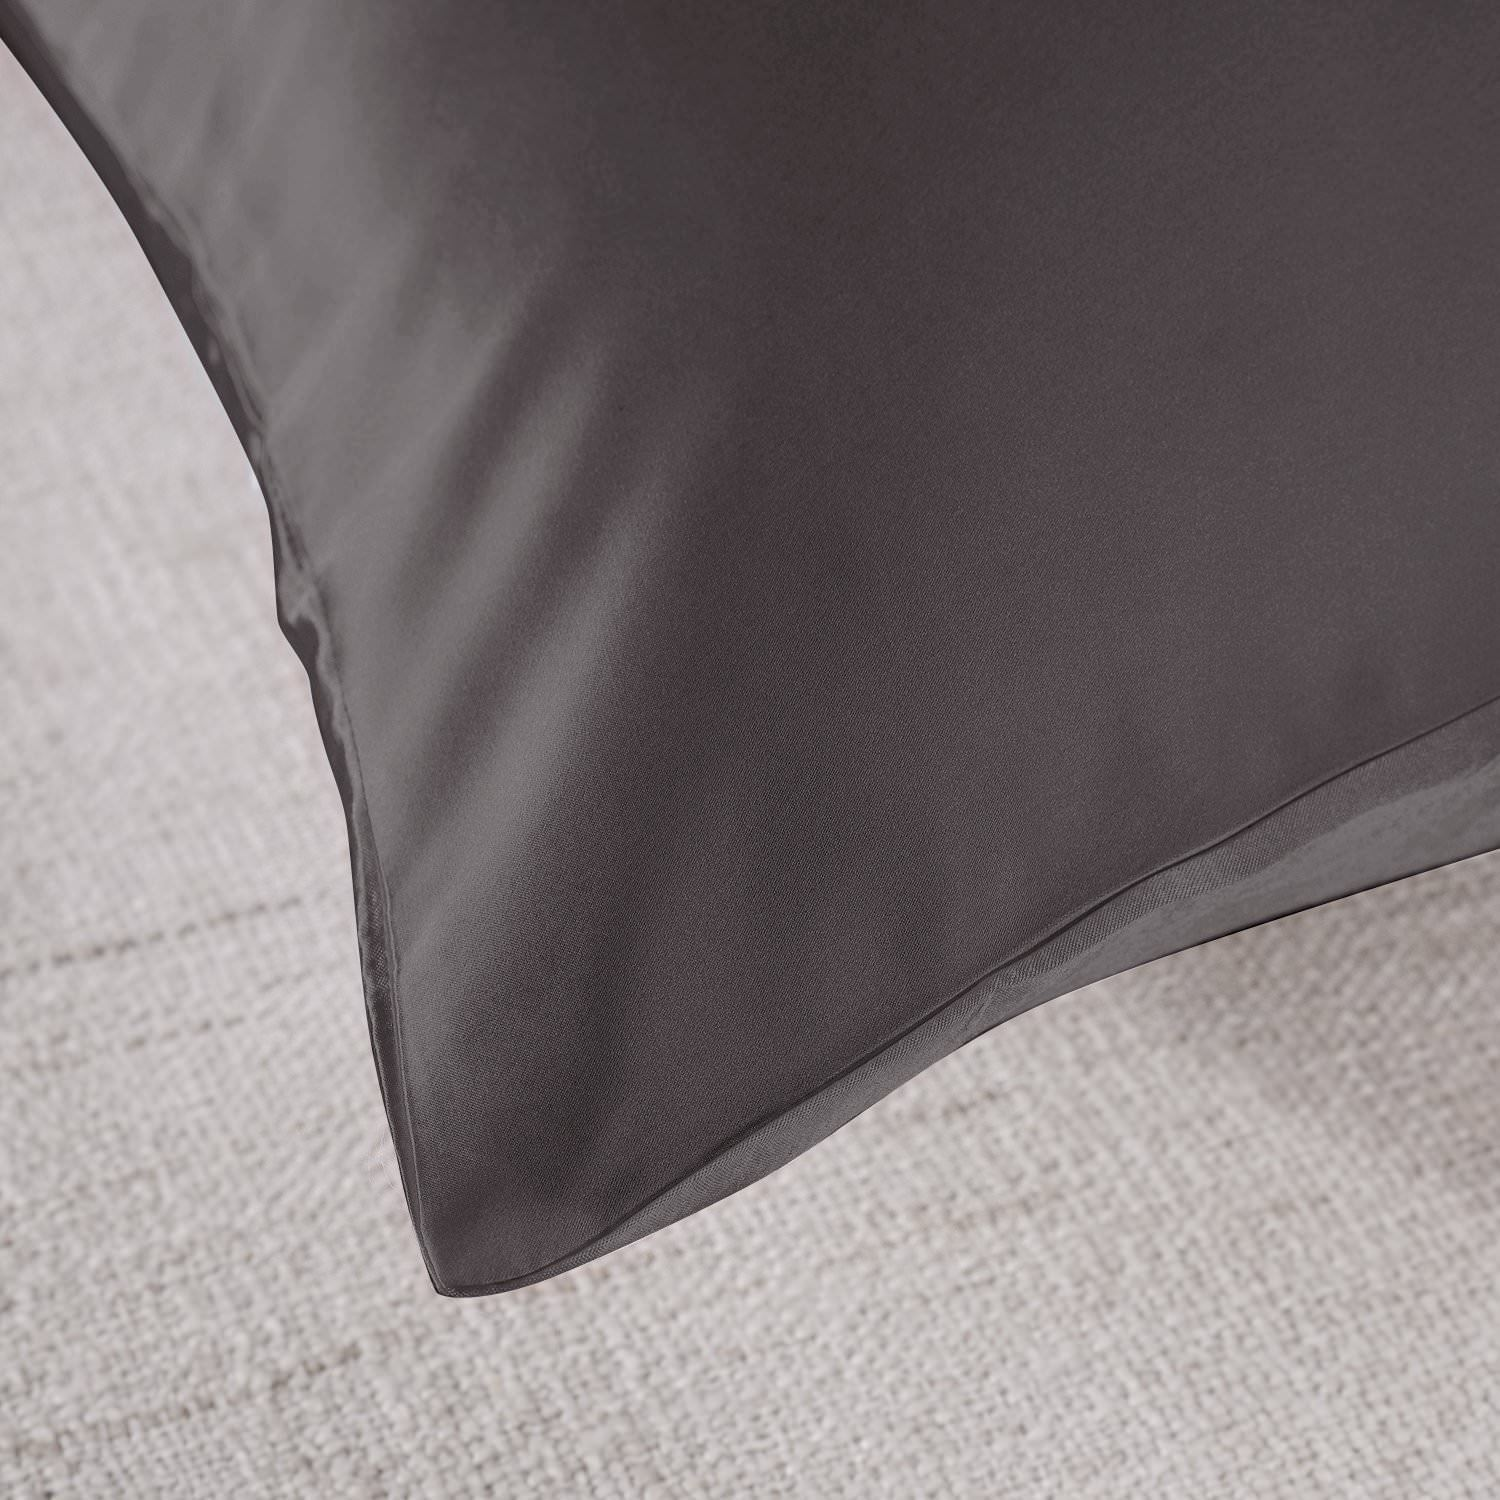 Royal-Comfort-Mulberry-Soft-Silk-Hypoallergenic-Pillowcase-Twin-Pack-51-x-76cm thumbnail 20